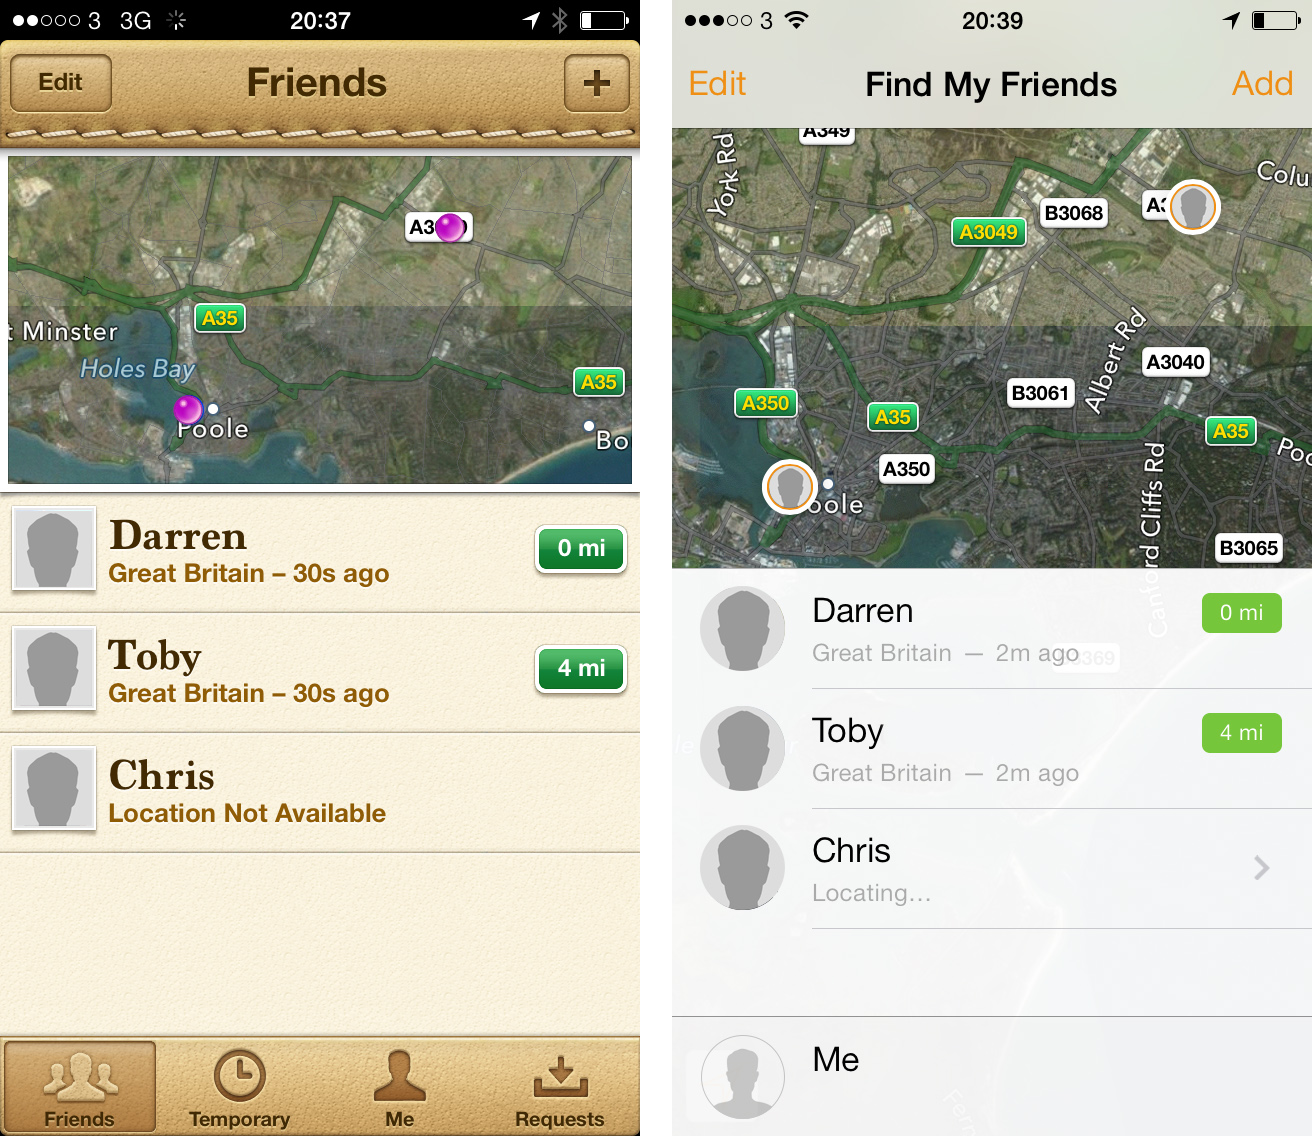 Find My Friends iOS 7 Comparison